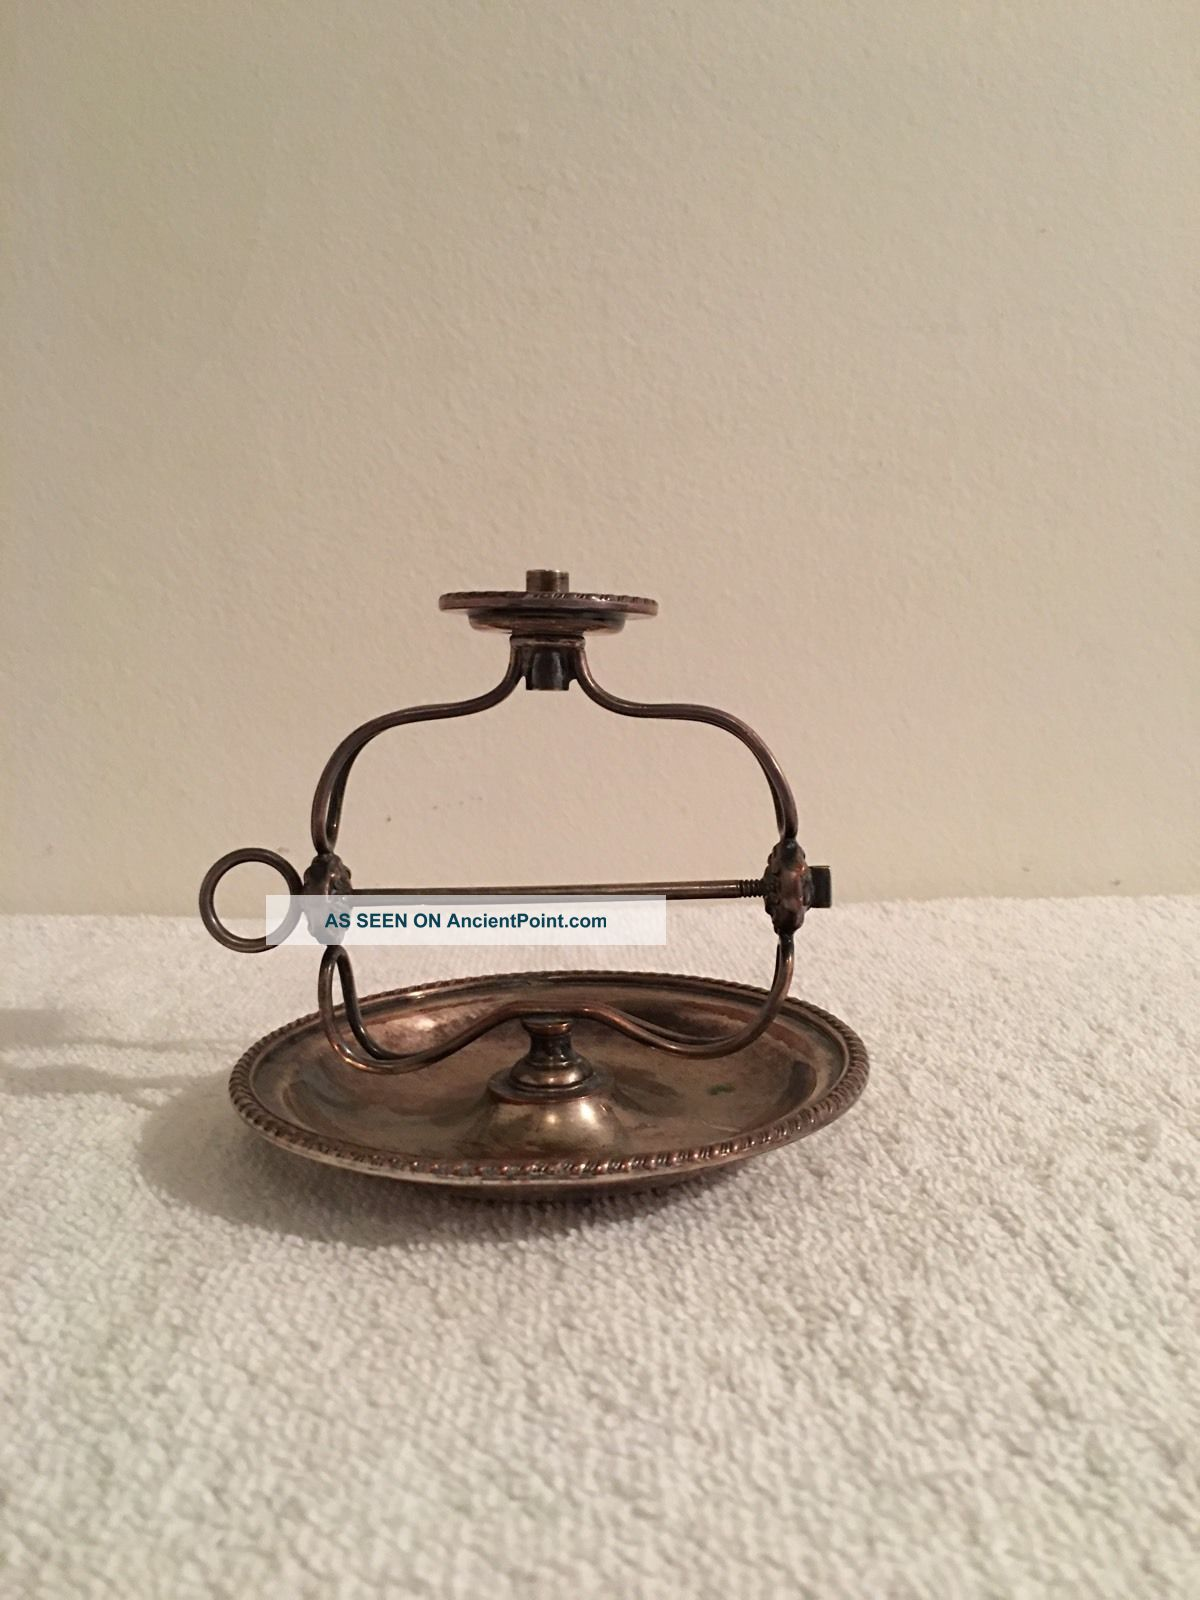 Antique Silverplate Candle Wax Jack Candlesticks & Candelabra photo